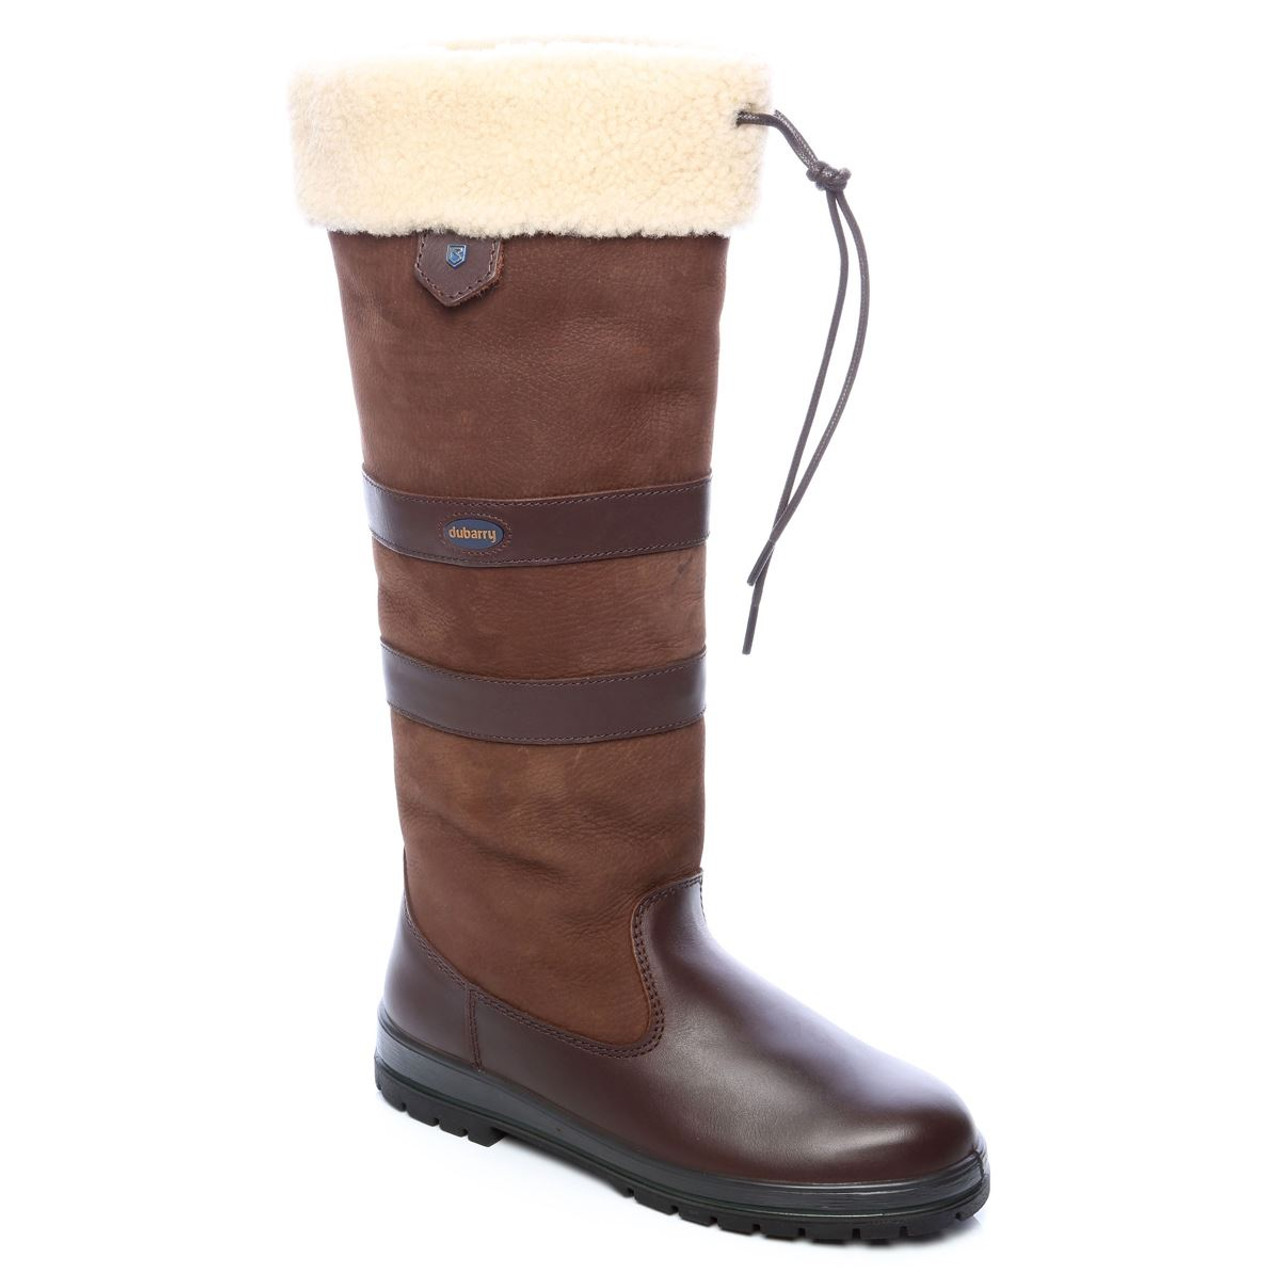 Dubarry Kilternan Boots in Walnut